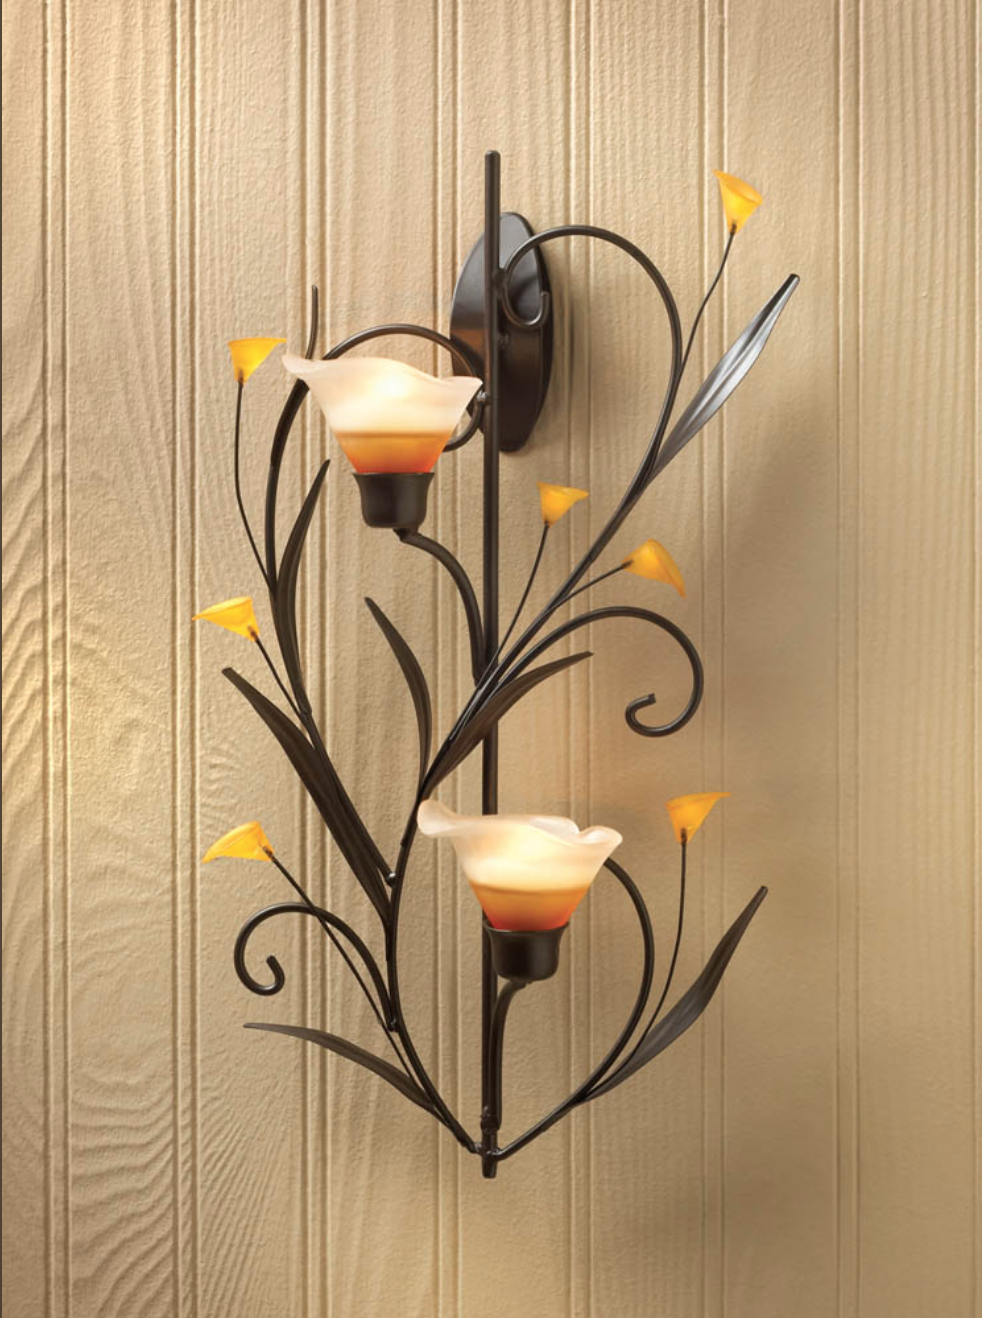 Amber Lilies Candle Wall Sconce Candle Holder Wall Sconce Wall Candle Holders Candle Wall Sconces